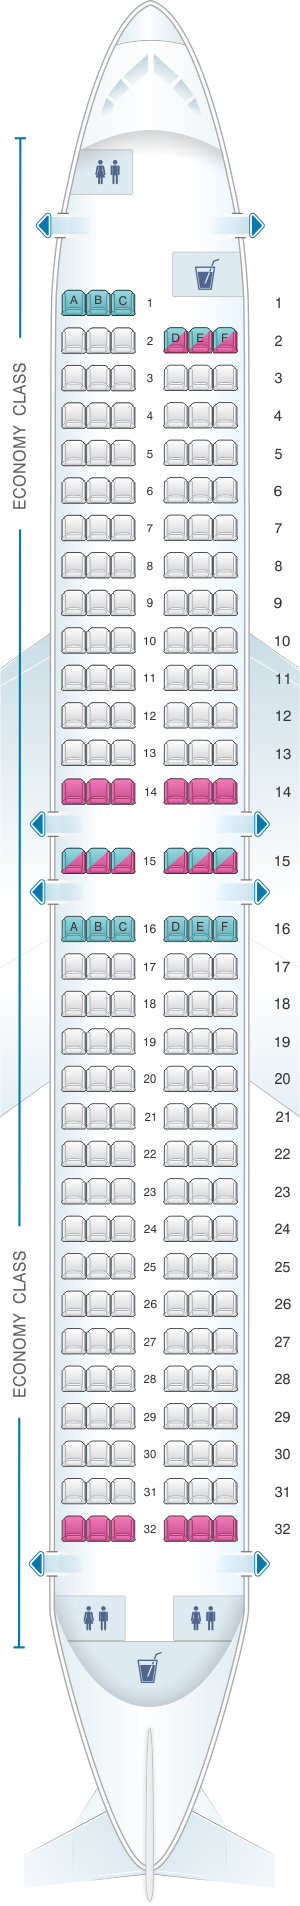 Seat map for Canjet Airlines Boeing B737 800